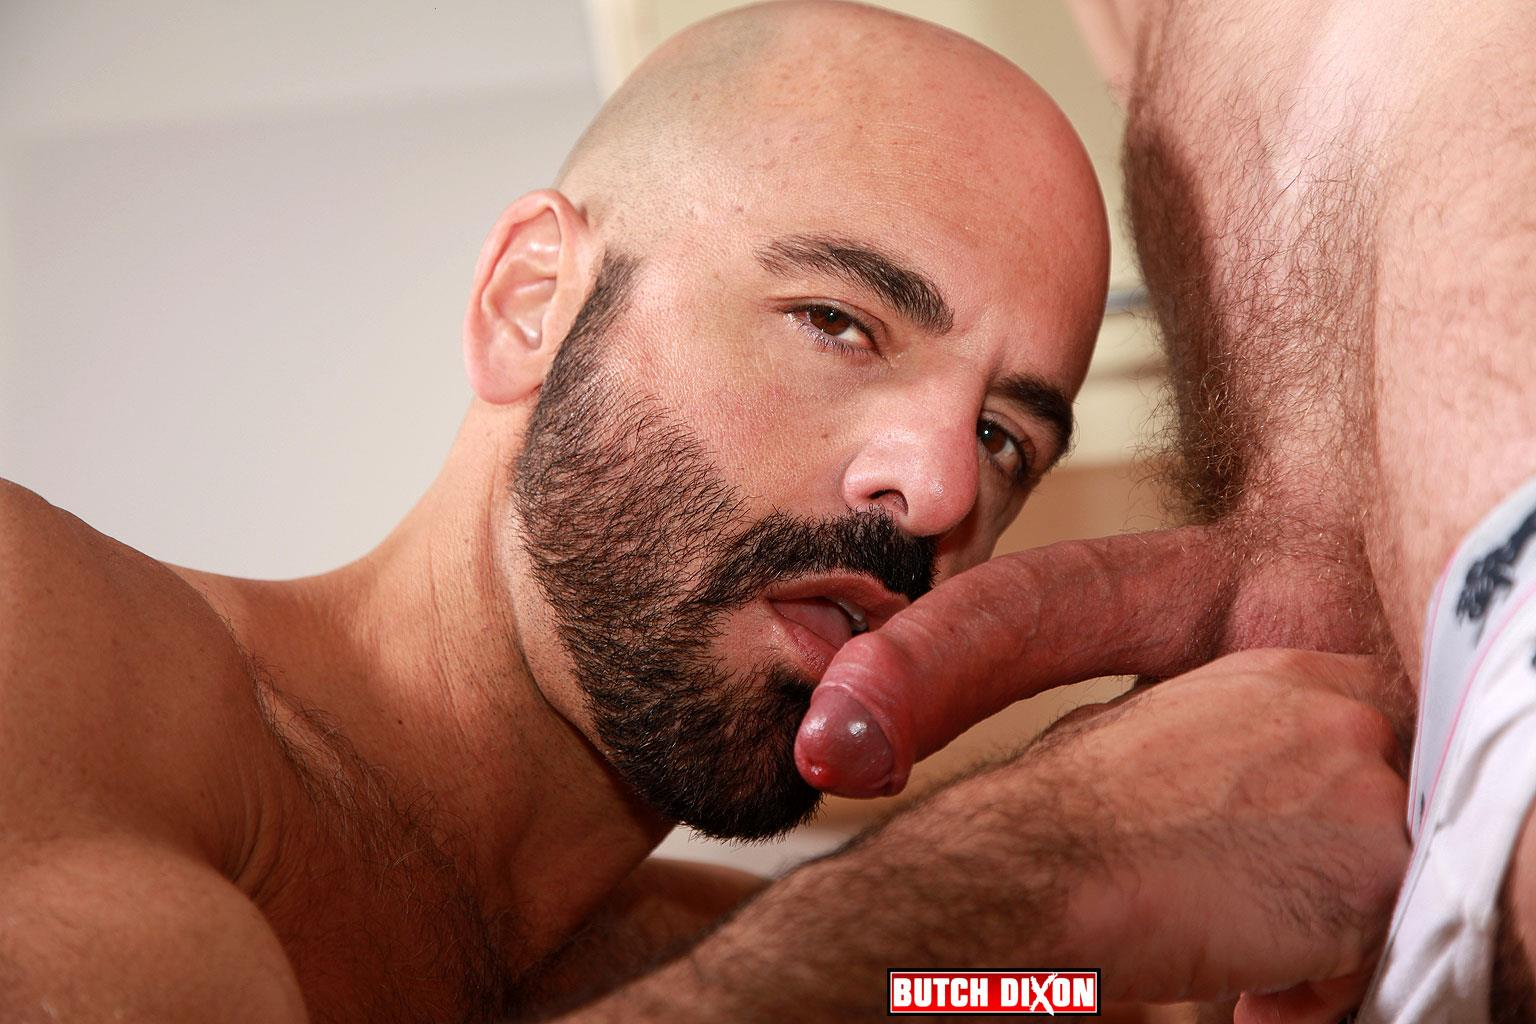 Butch Dixon Adam Russo and Adam Dacre Getting Fucked By A Big Uncut Cock Amateur Gay Porn 02 Adam Russo Getting A Big Bareback Uncut Cock Up His Hairy Ass